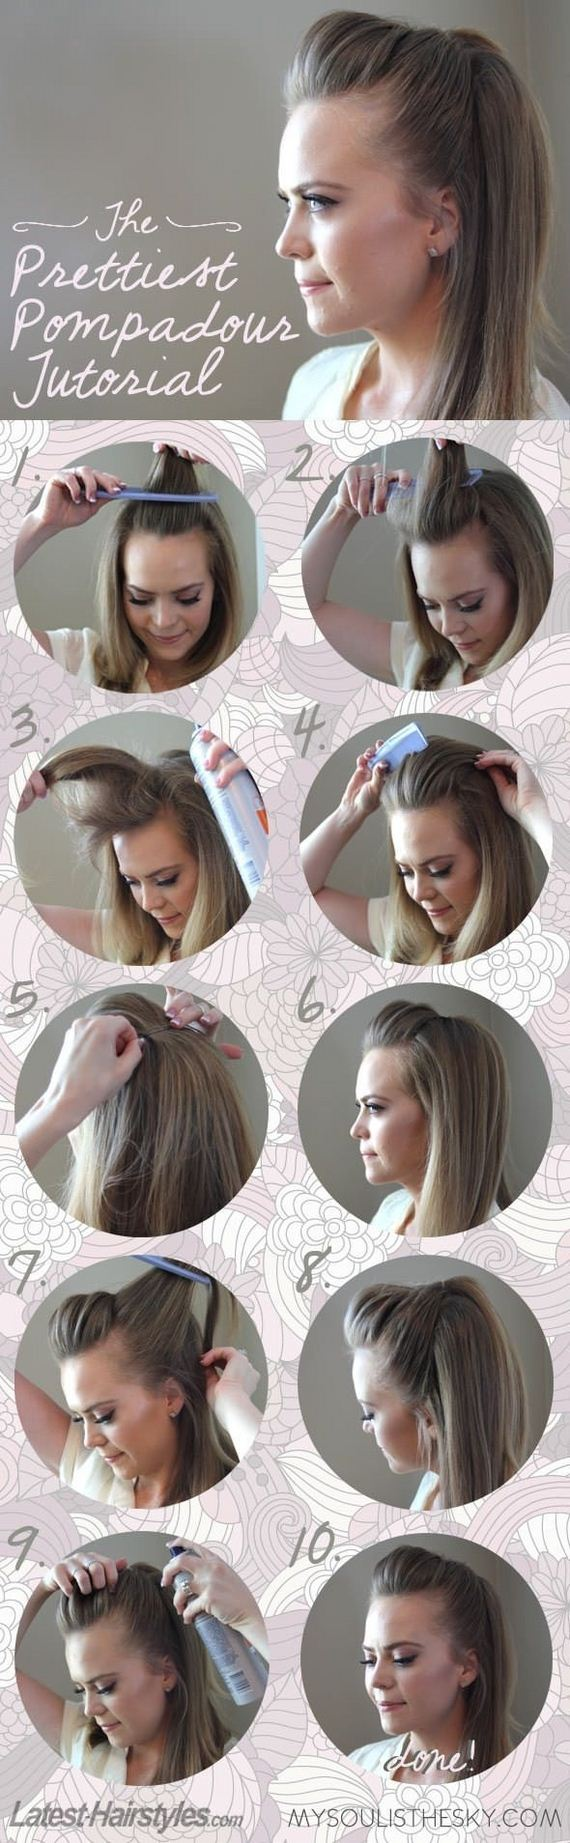 22-Five-Minute-Hairstyles